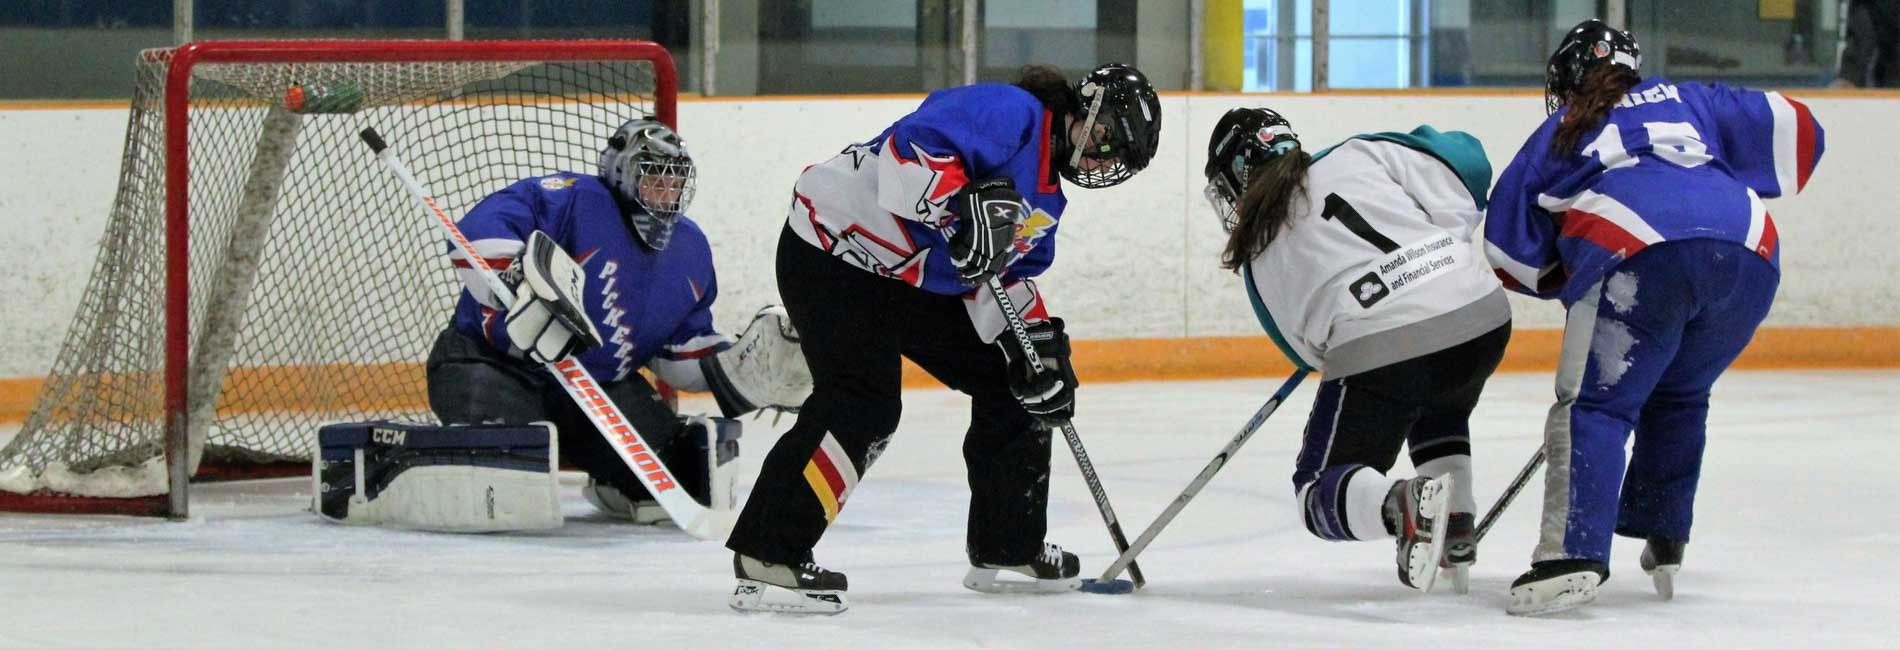 Standard swscd   ringette   activity page banner  1900x650